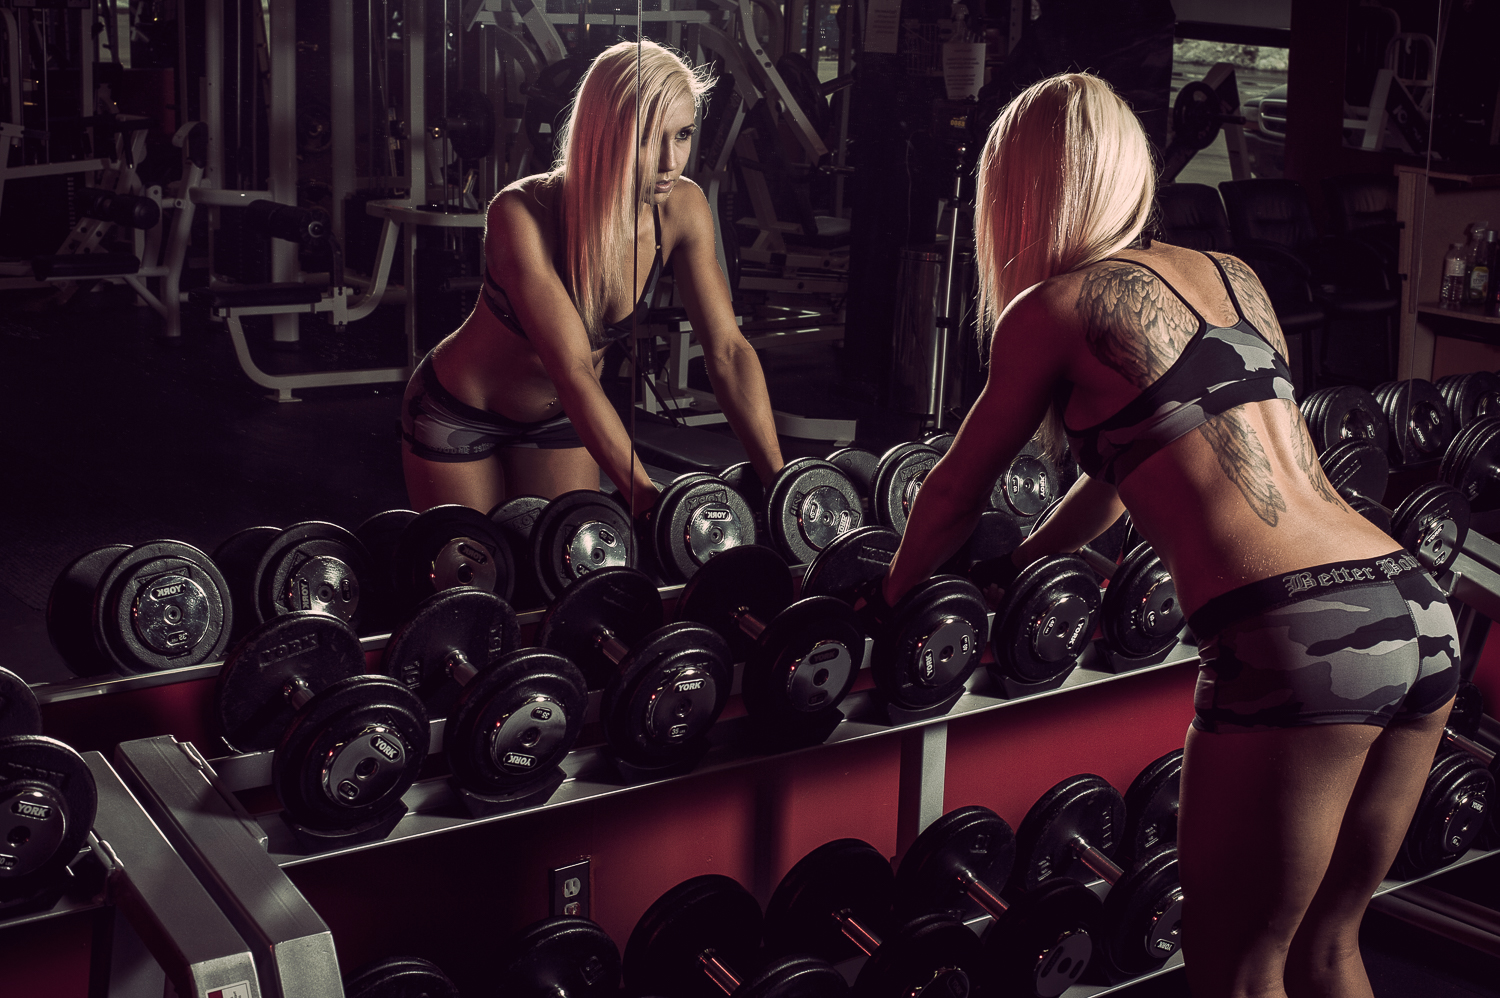 Hamilton Toronto Fitness Photographer - Female Working Out by Marek Michalek.jpg